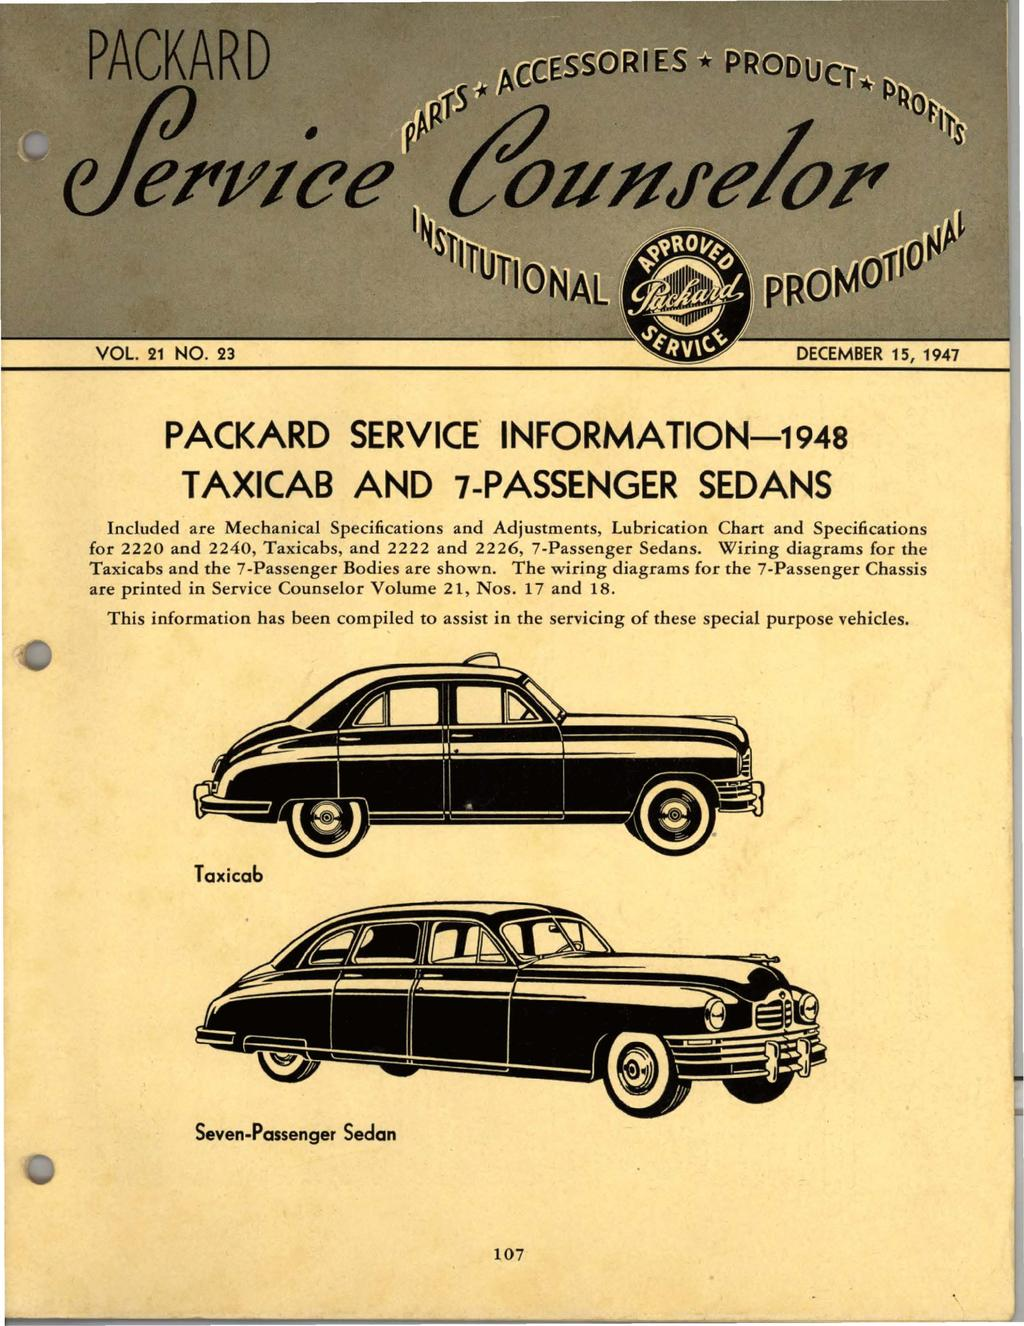 Packard Motor Wiring Detailed Schematics Diagram Rts Service Information 1948 Taxicab And 7 Passenger Sedans Pdf Convertible